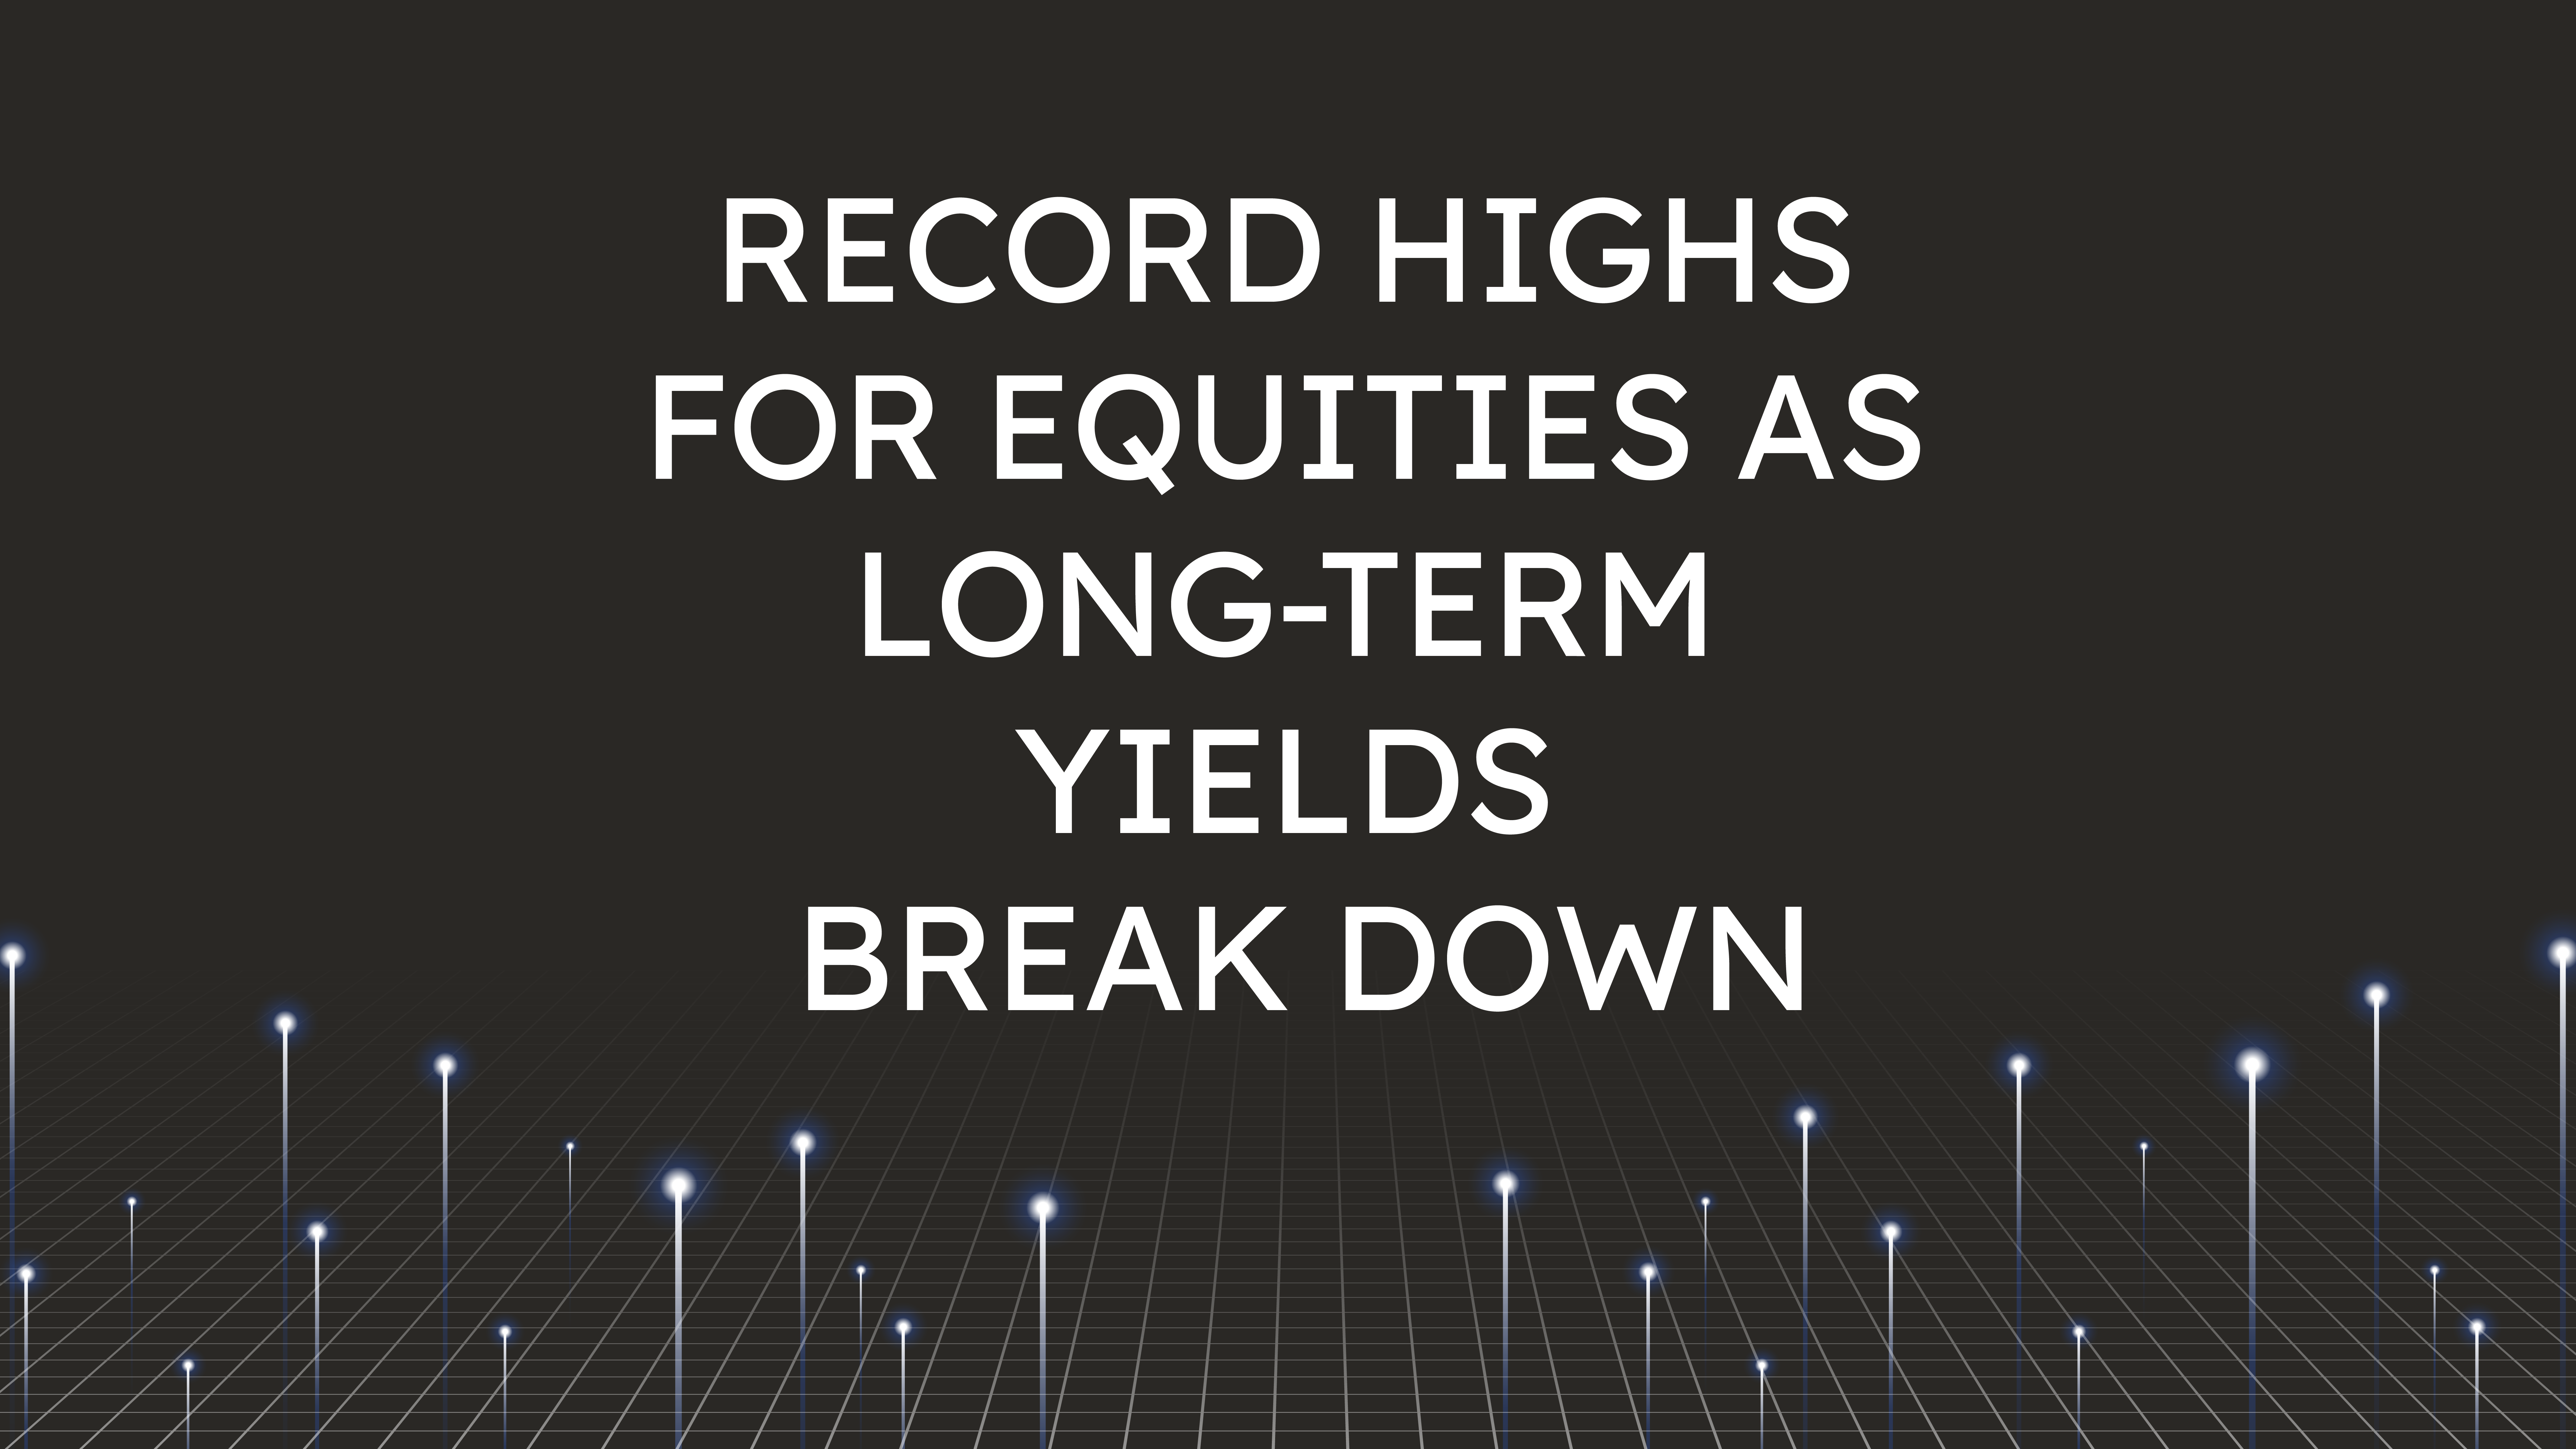 Record Highs for Equities  as Long-Term Yields Break Down